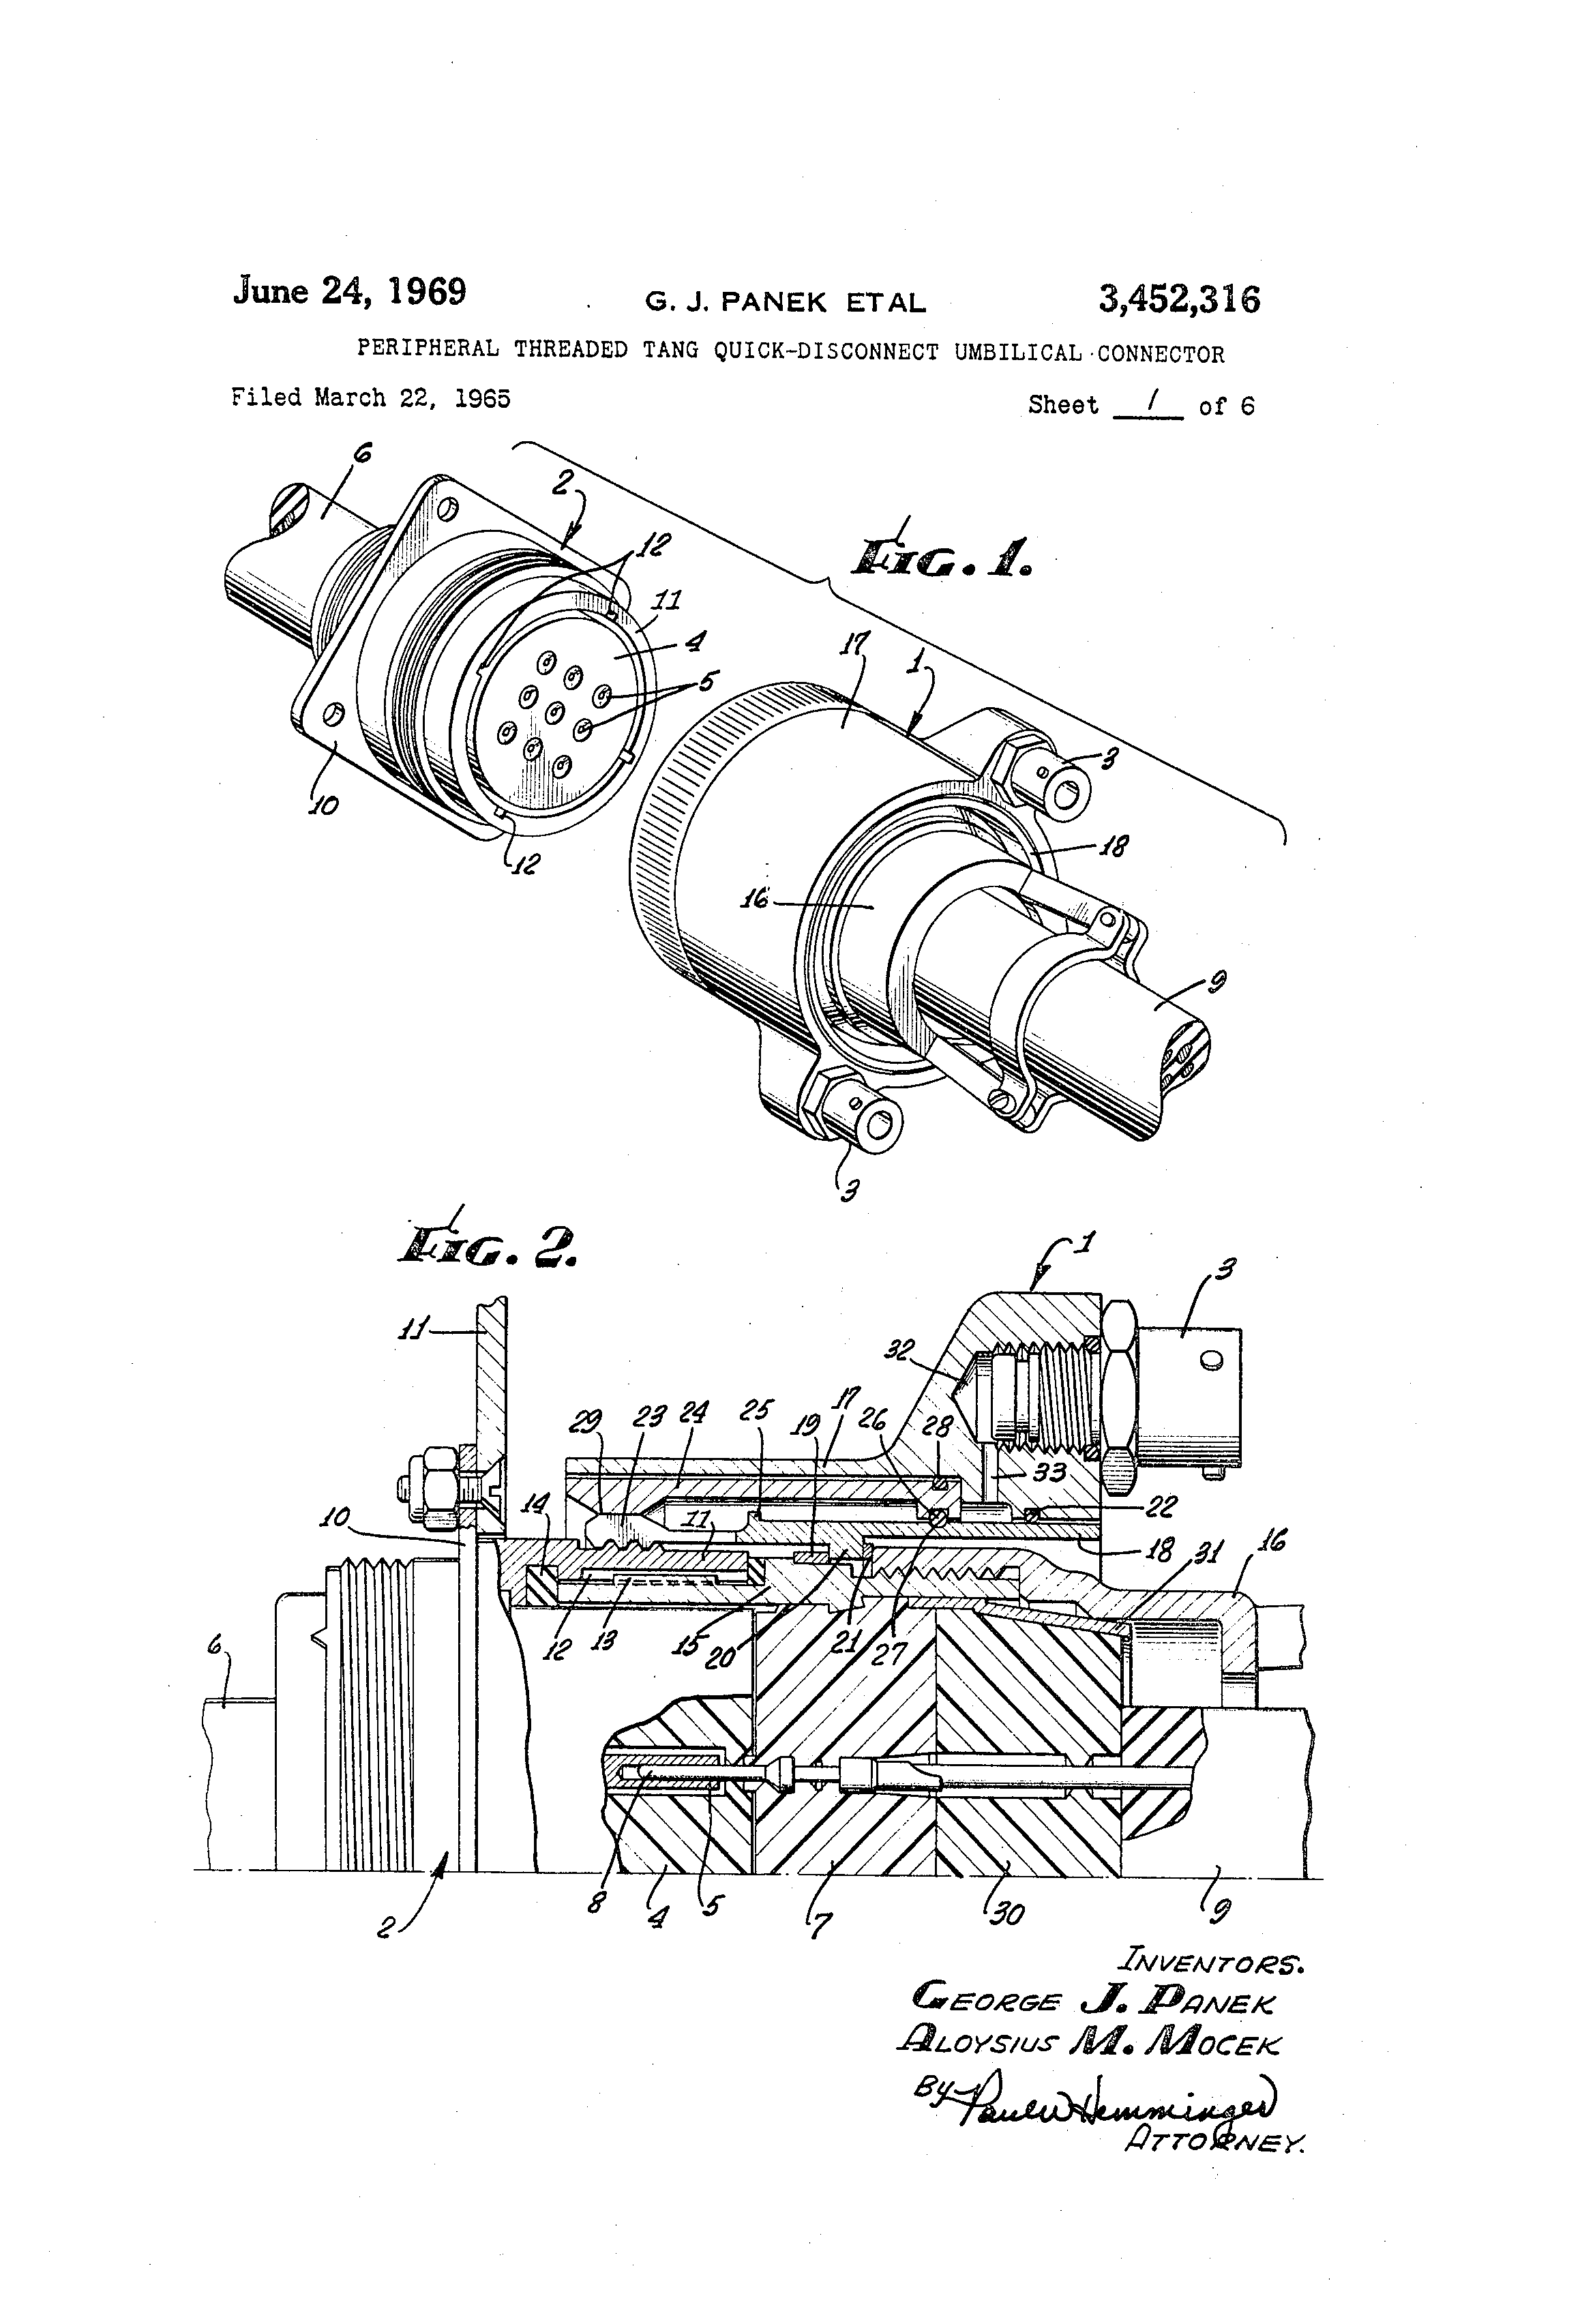 patent us3452316 - peripheral threaded tang quick-disconnect umbilical connector